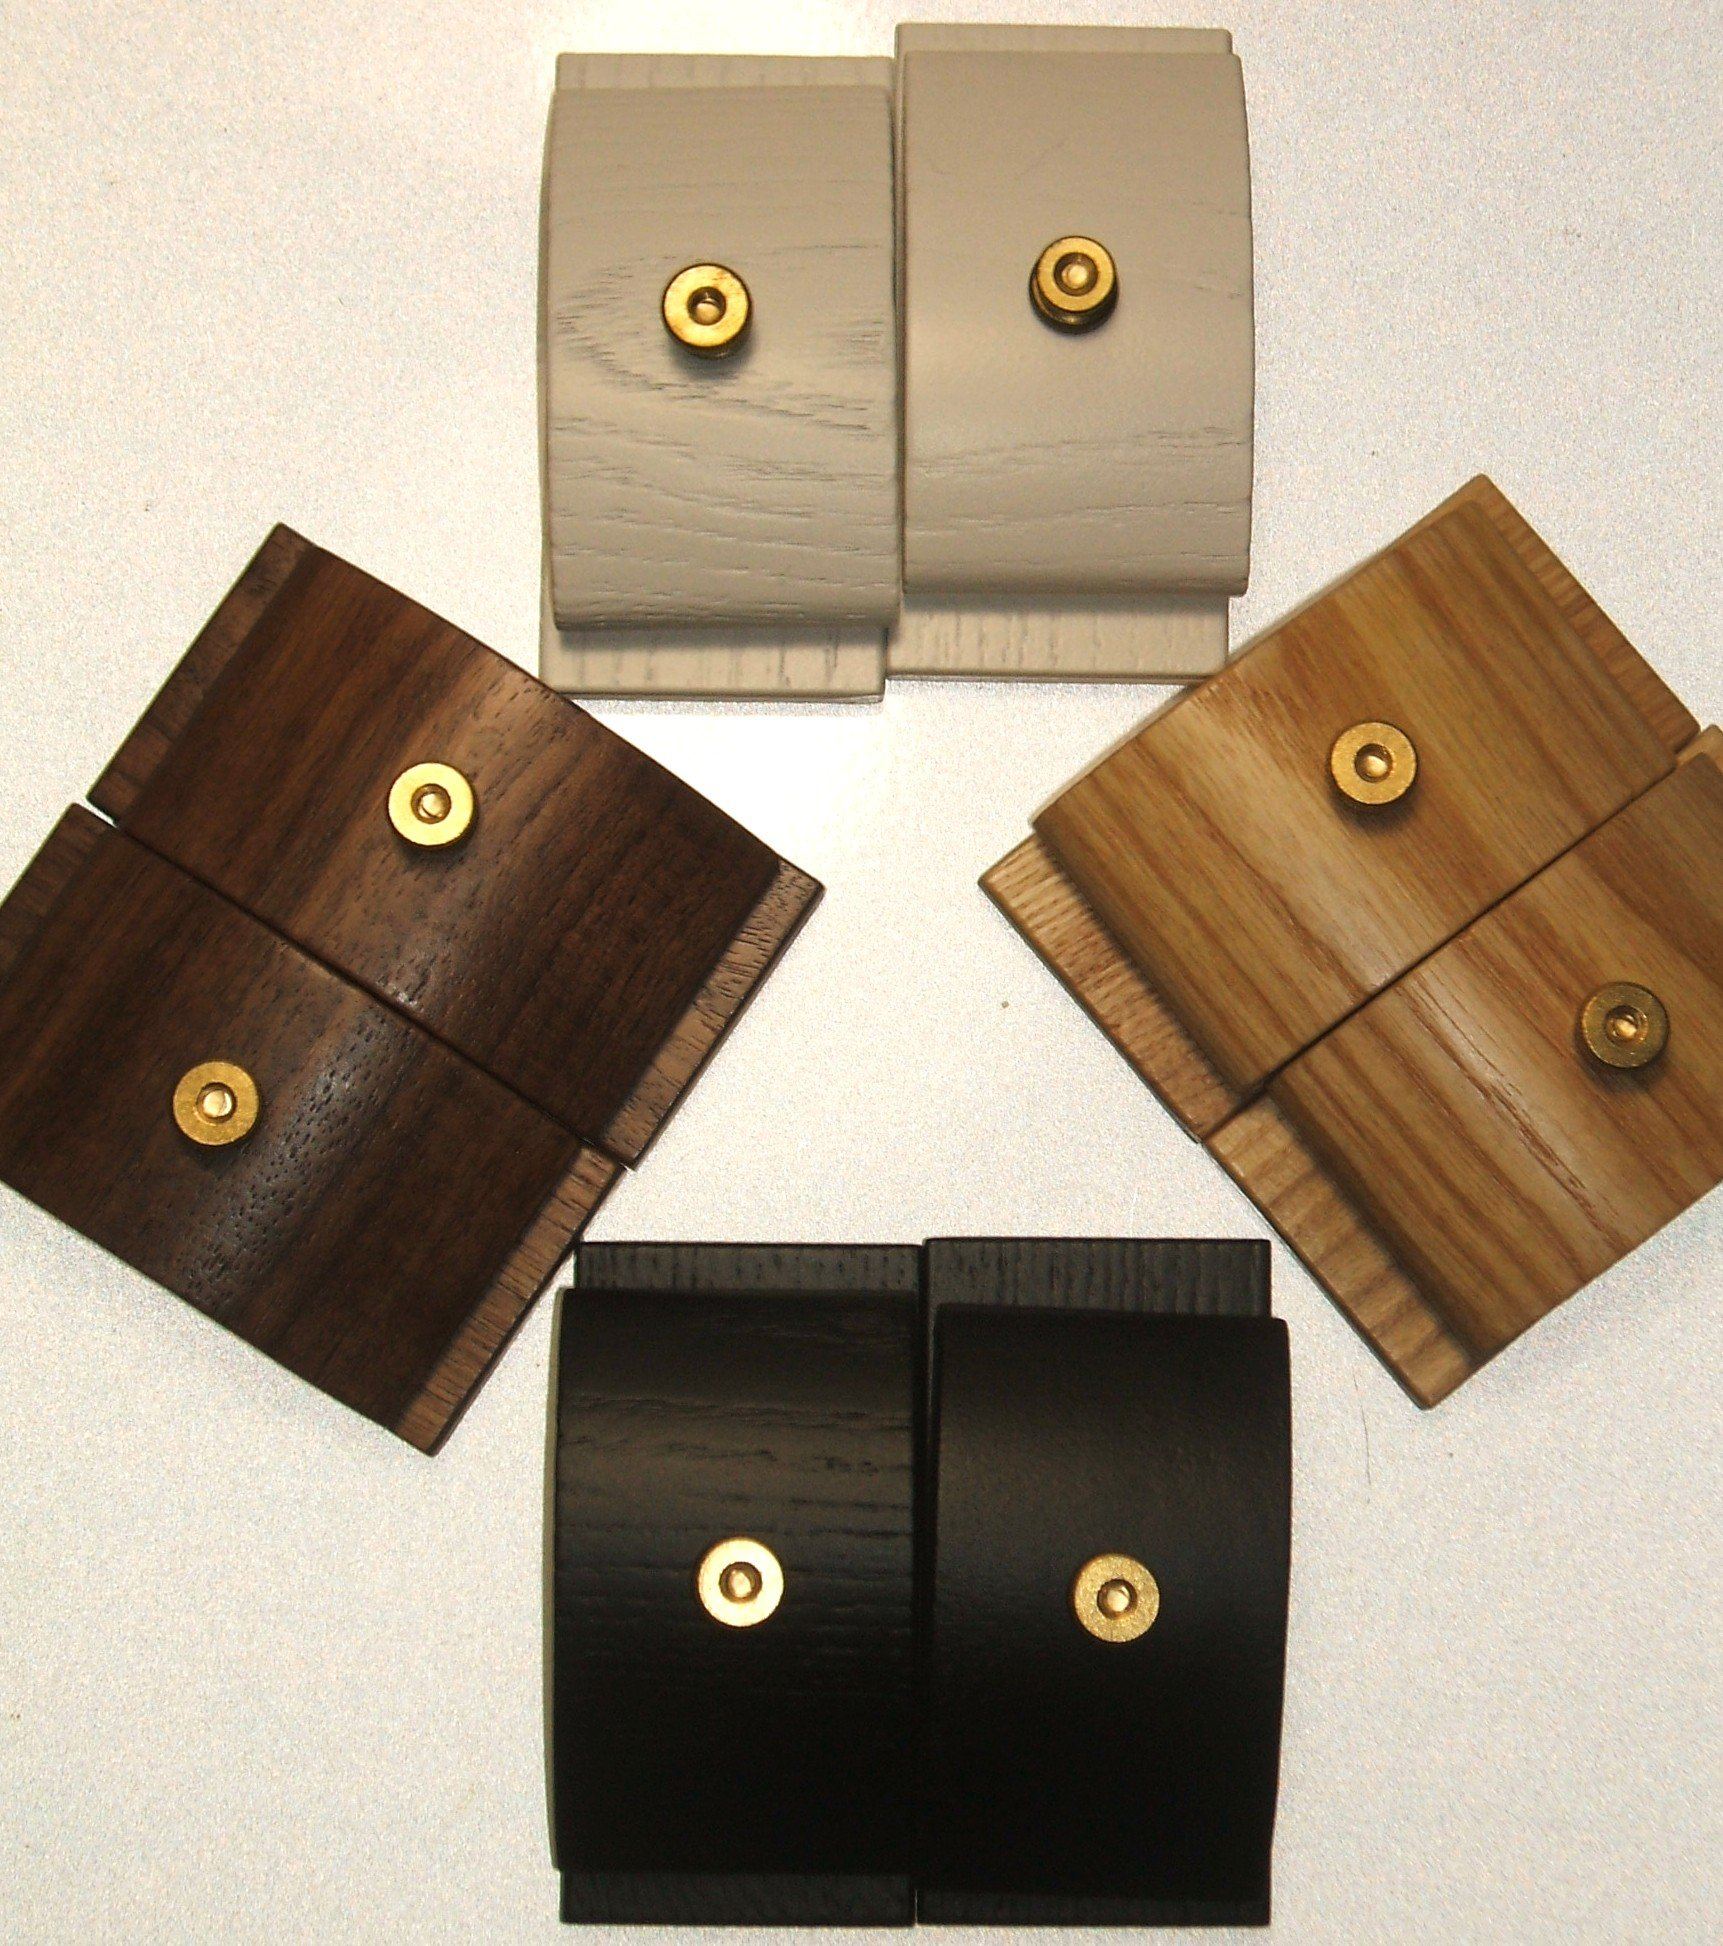 1 Pair Mini Walnut Hang-Ups Quilt Clamps Clips - Small by Walnut Hang-Ups (Image #3)